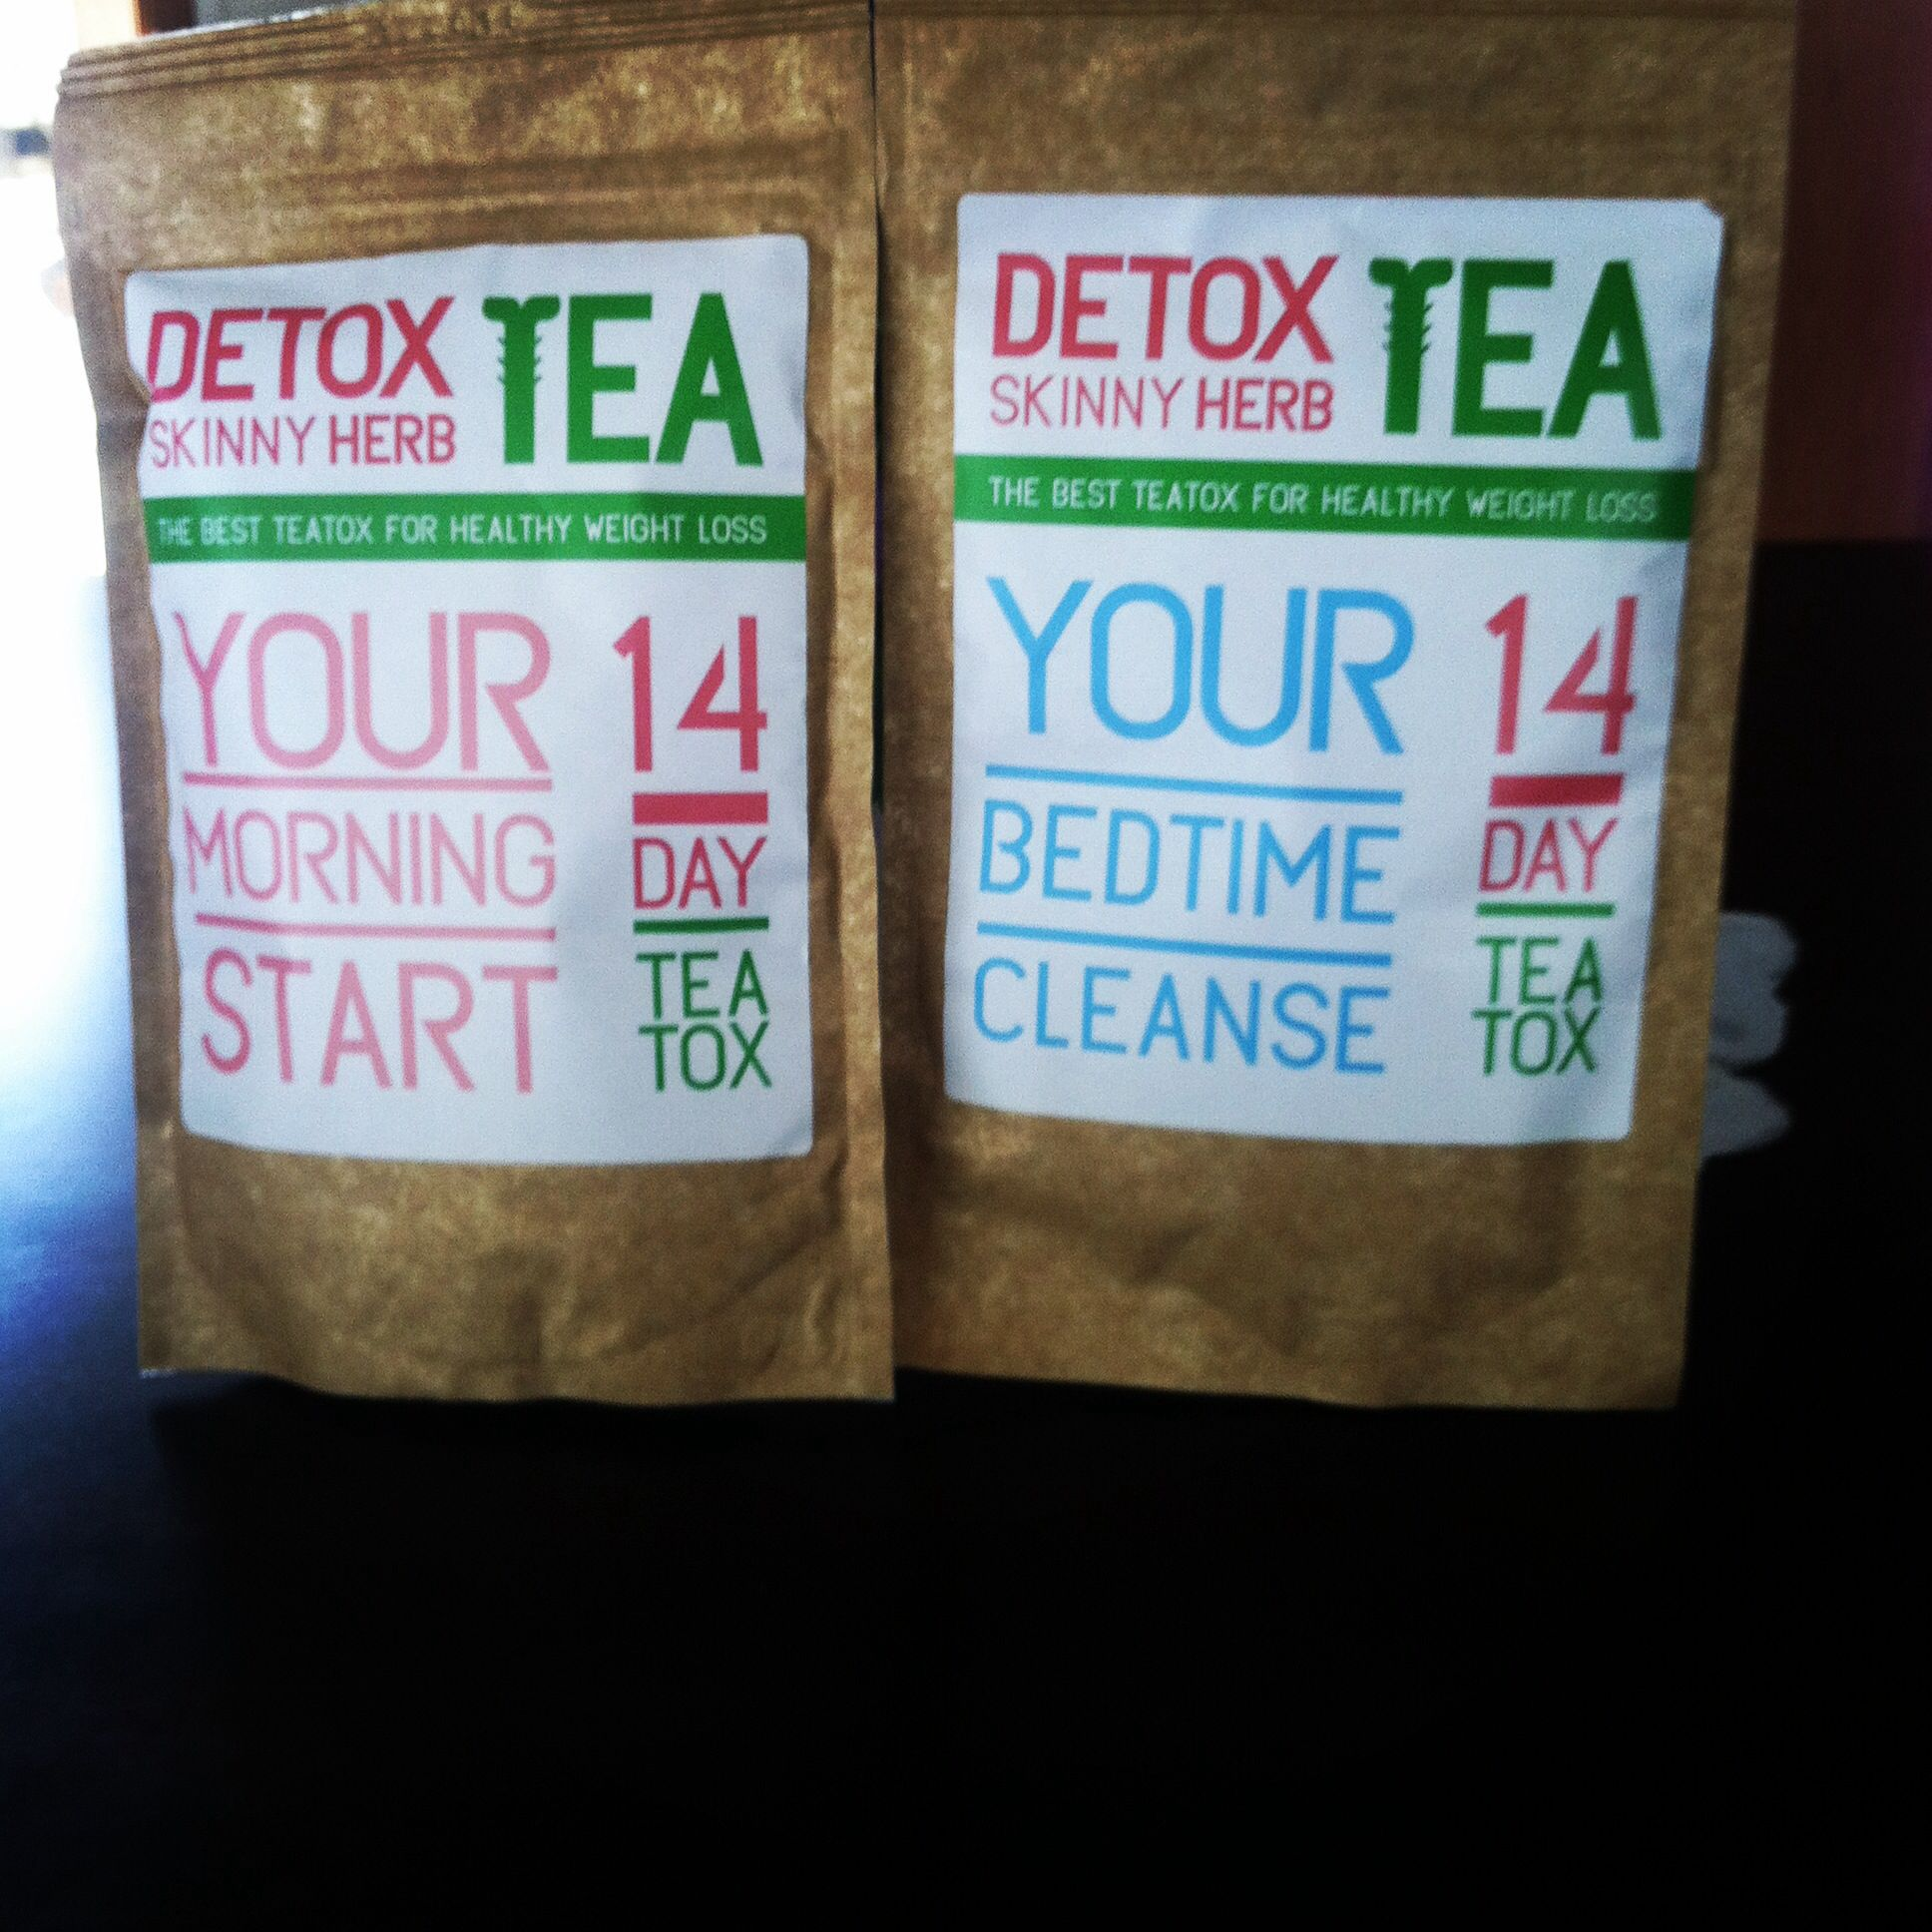 Detox skinny herb tea 14 days morning and bedtime fit